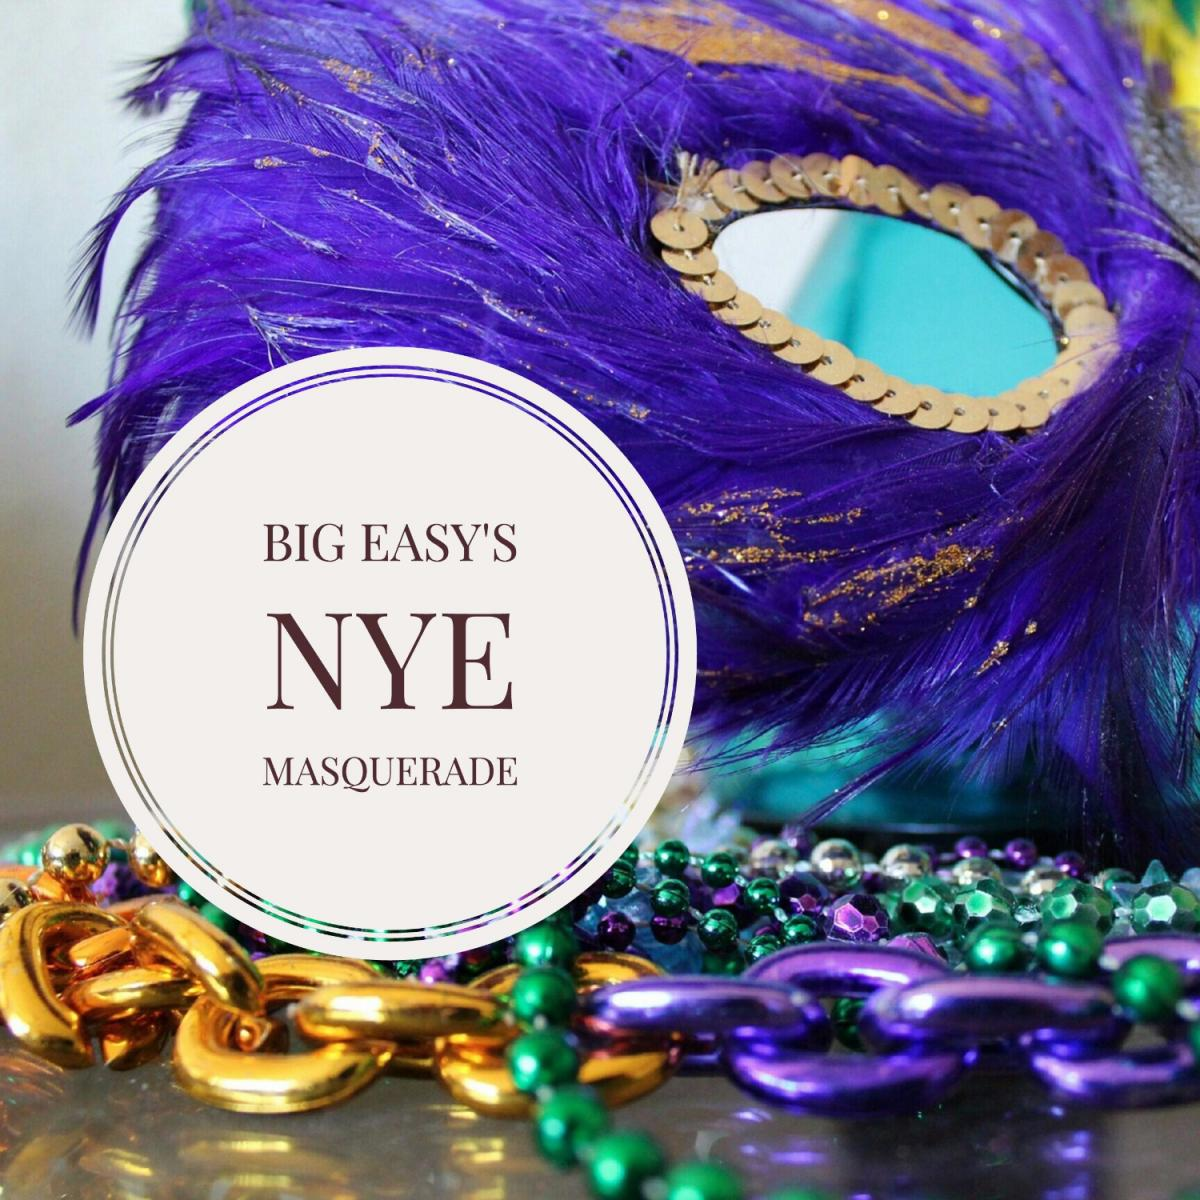 Big Easy Hosts Sensational New Year's Eve Masquerade in Tampa